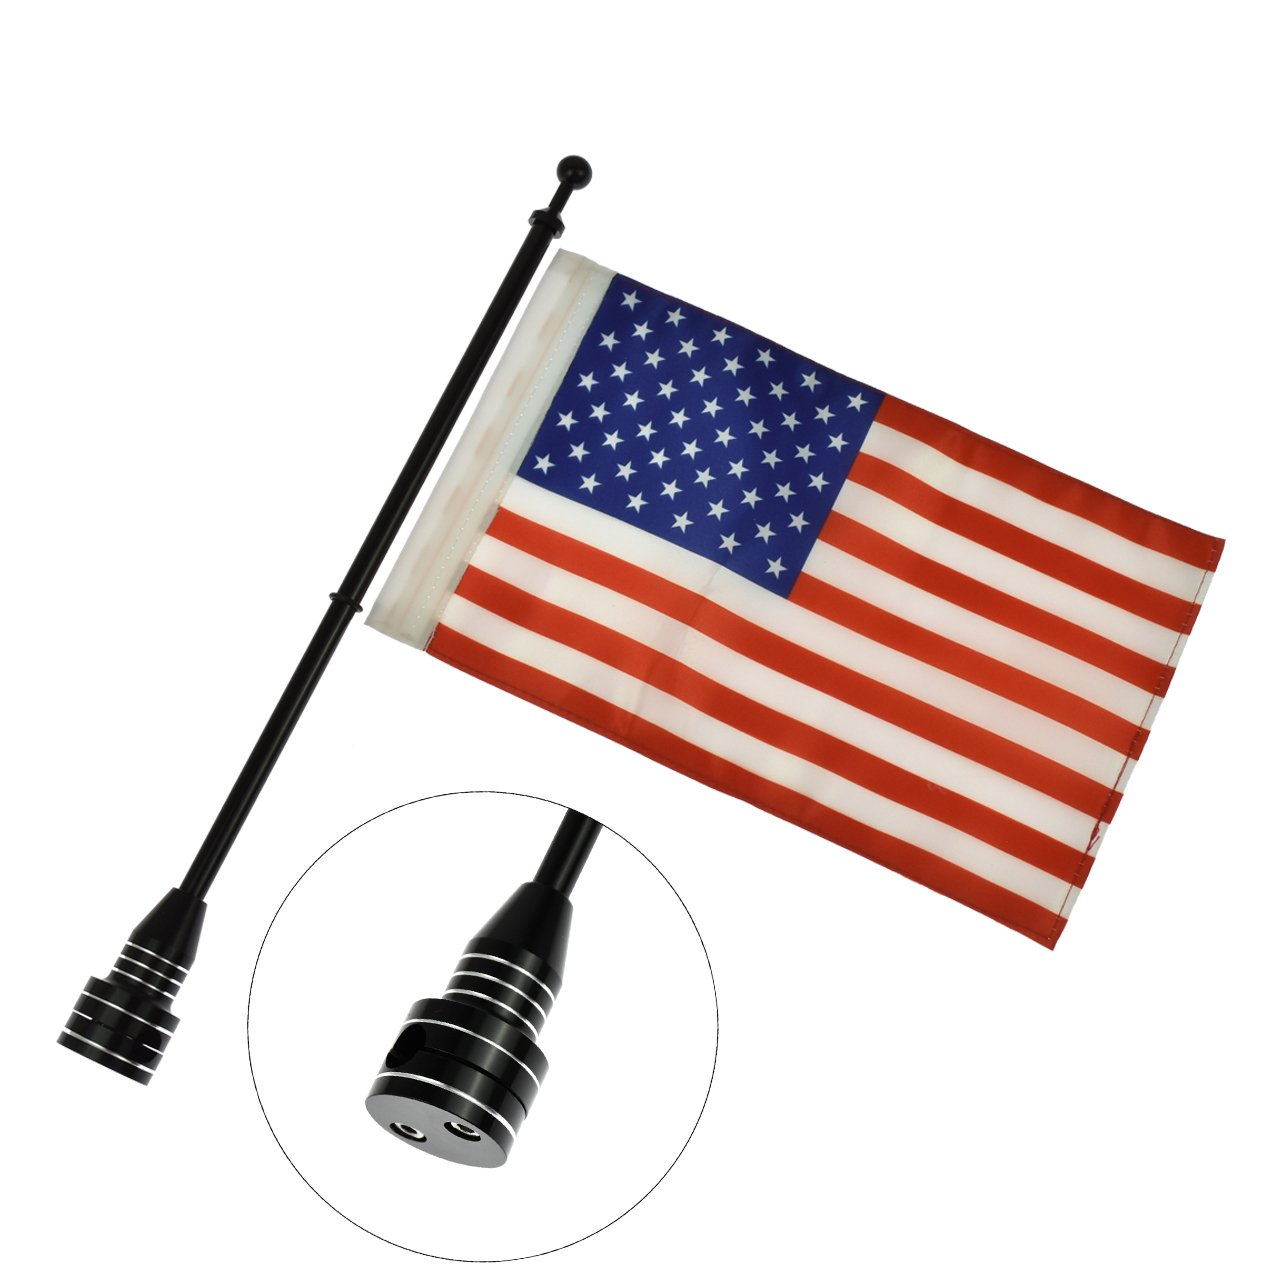 Motorcycle Rear Side Flagpole Mount Adjustable Luggage Rack America Flag for Harley Sportster XL 883 1200 Touring Black by Rebacker (Image #1)